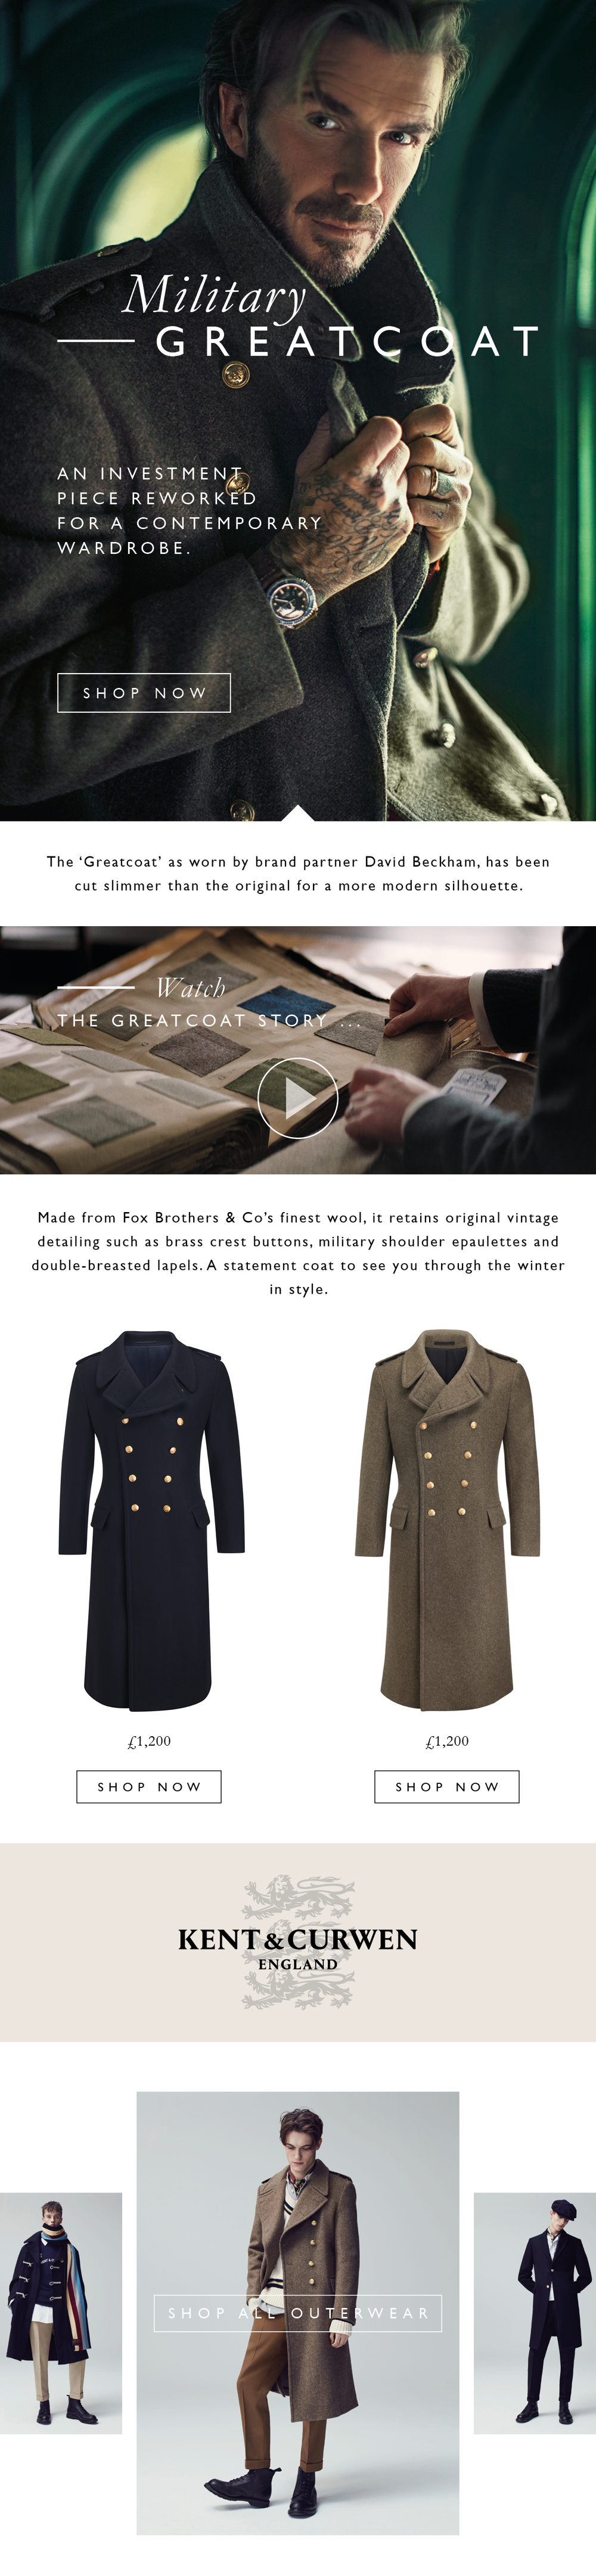 David Beckham appearing in the menswear fashion great coat email design by freelance graphic design based London, Lauren Grace